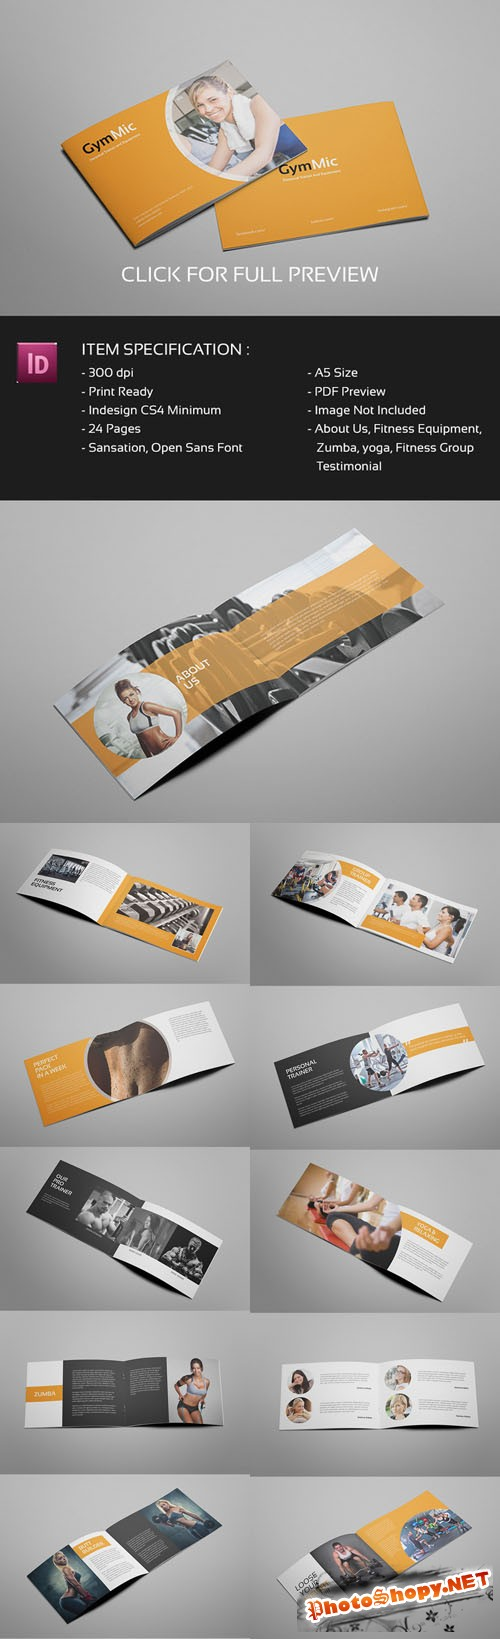 Gymmic - A5 Fitness and Gym Brochure - Creativemarket237268